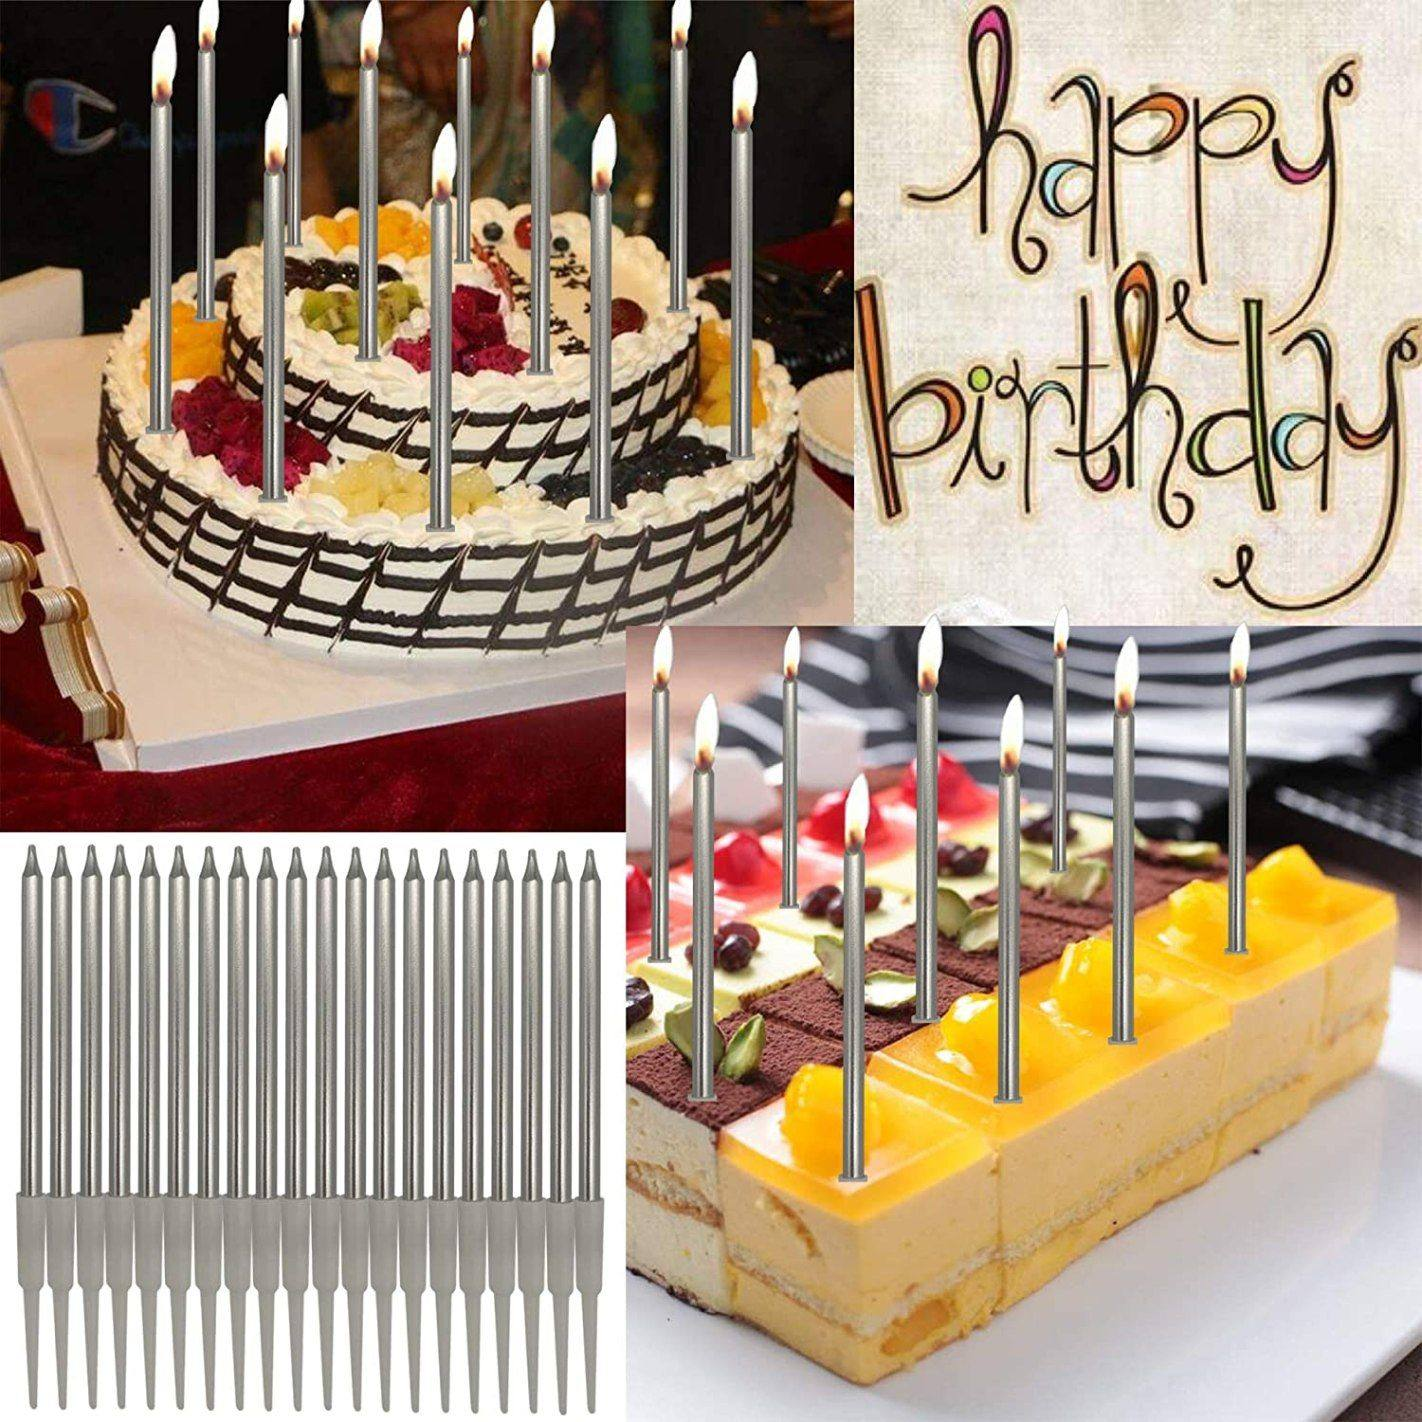 Amazon: PASSDIGY 24 Pieces Birthday Cake Candles ONLY $4.49 (Reg. $8.99)